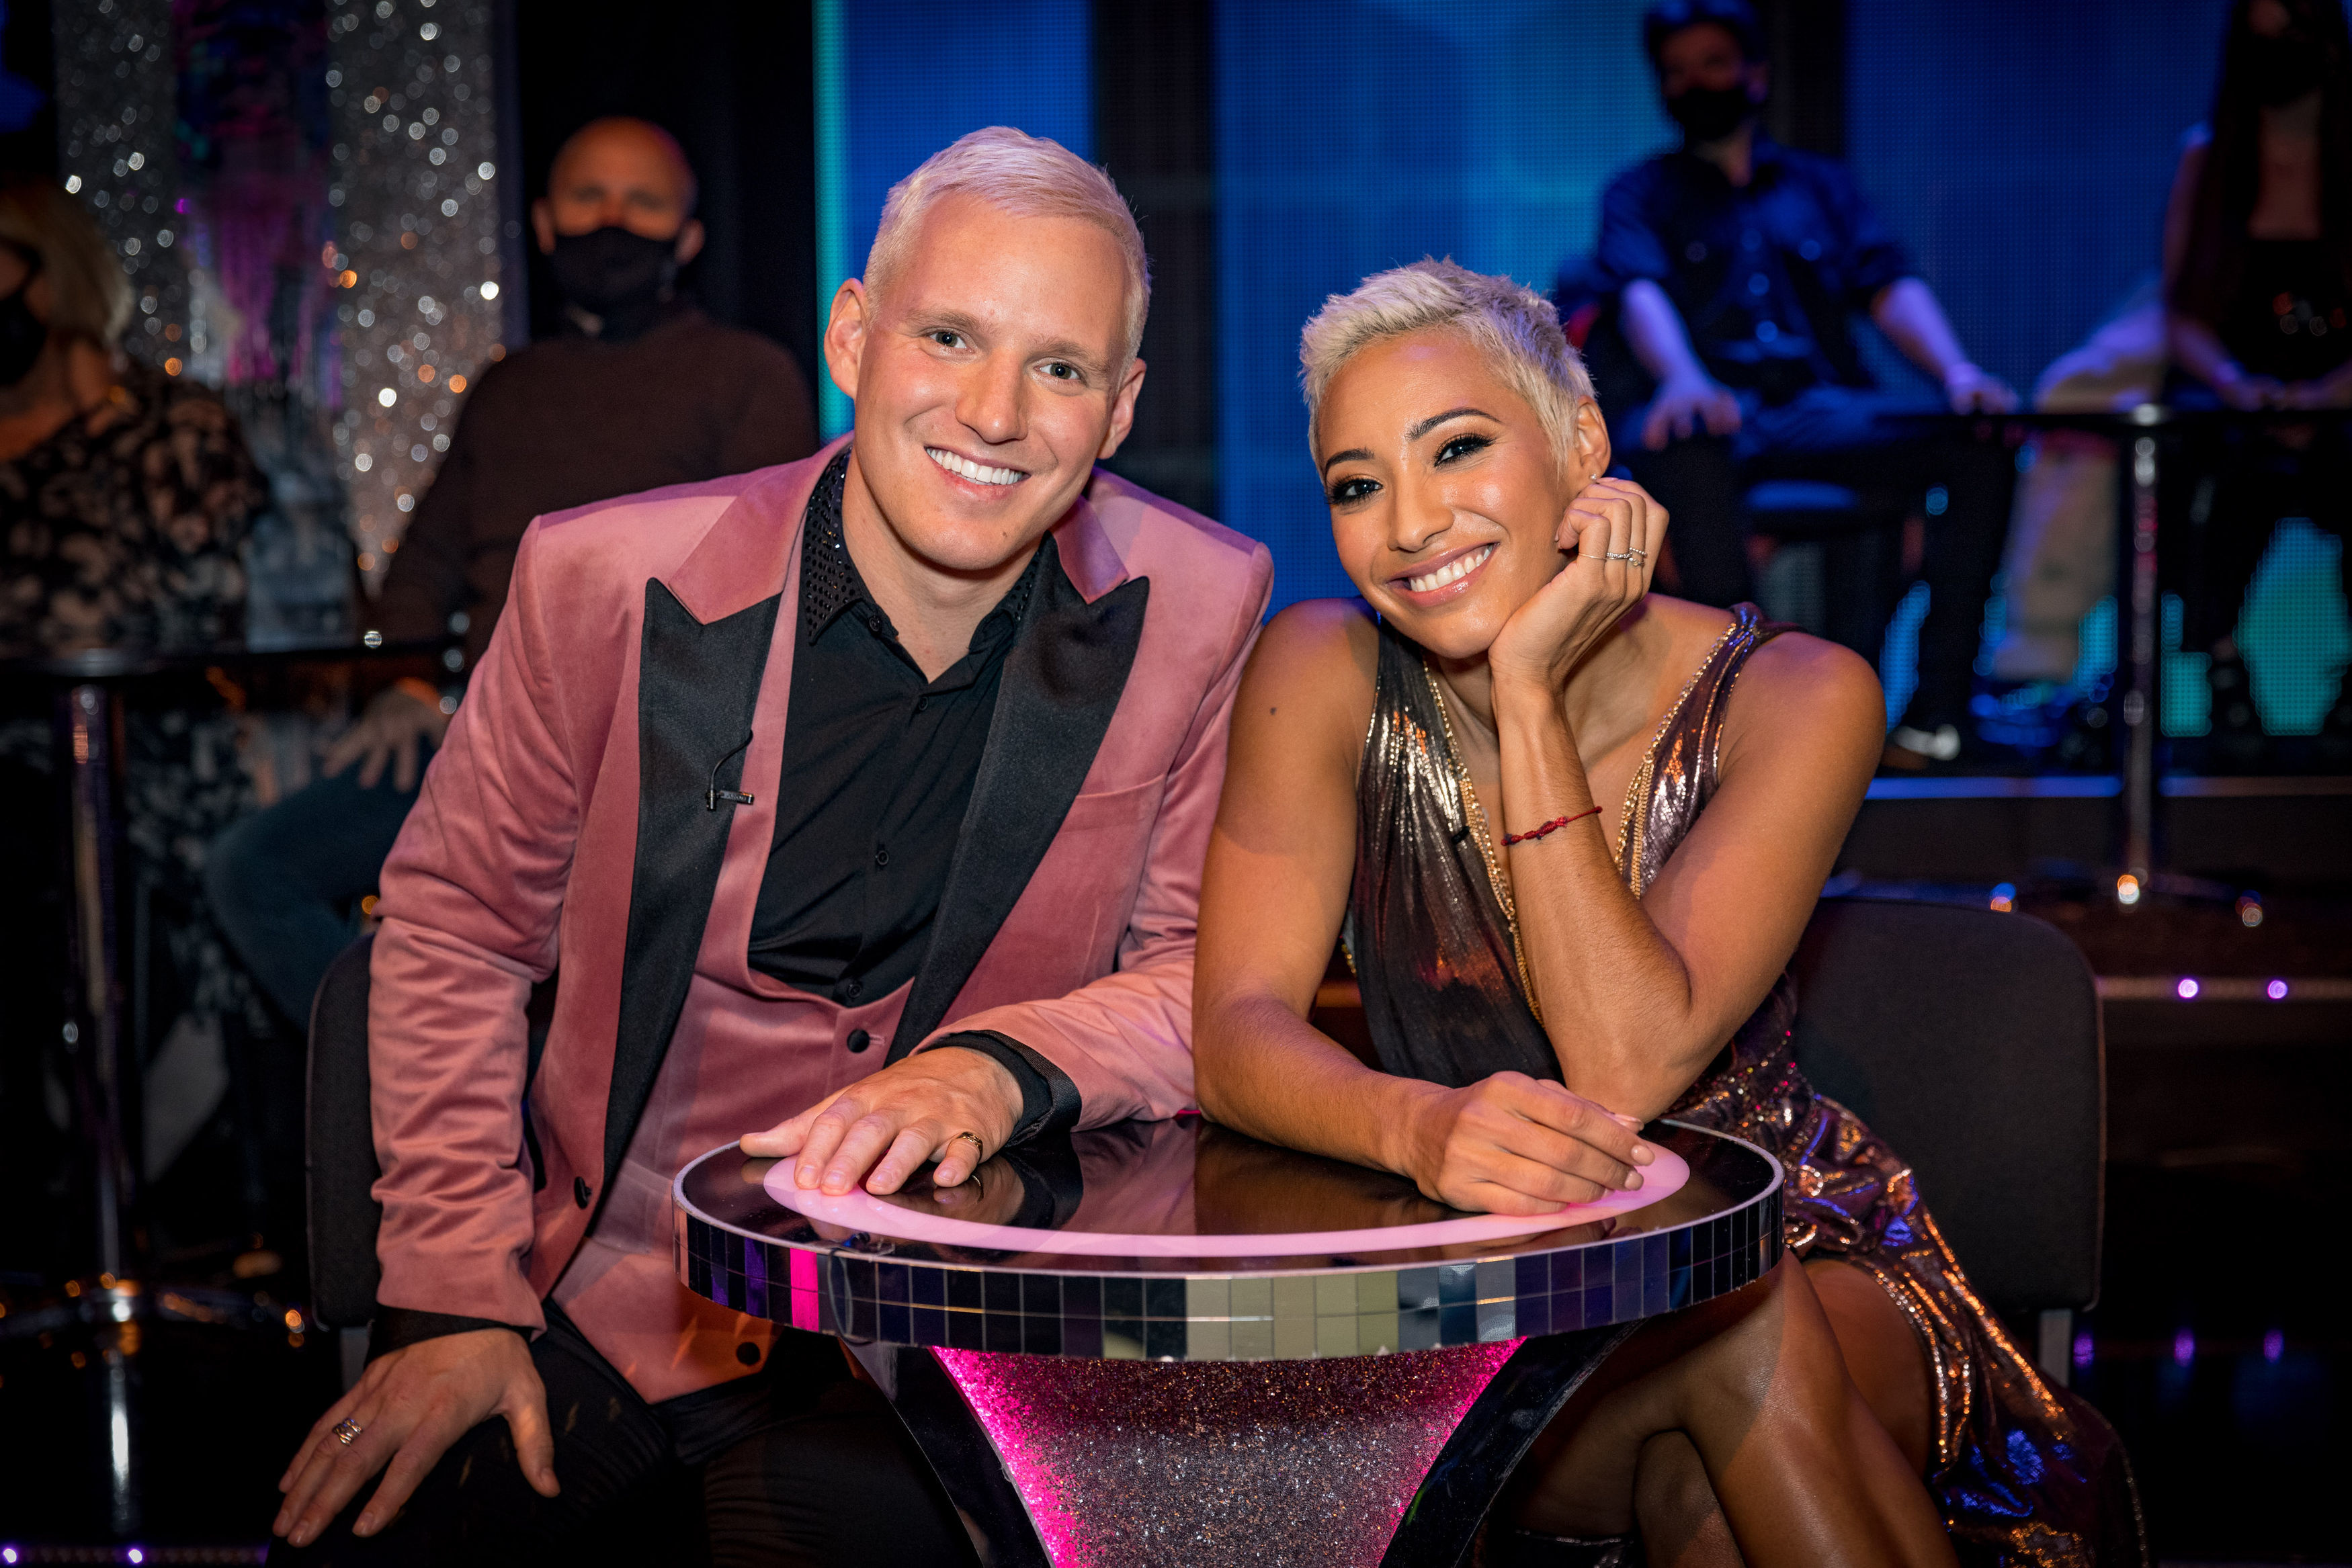 Strictly fans in hysterics as they claim Jamie Laing and Karen Hauer were partnered up because of their matching hairdos